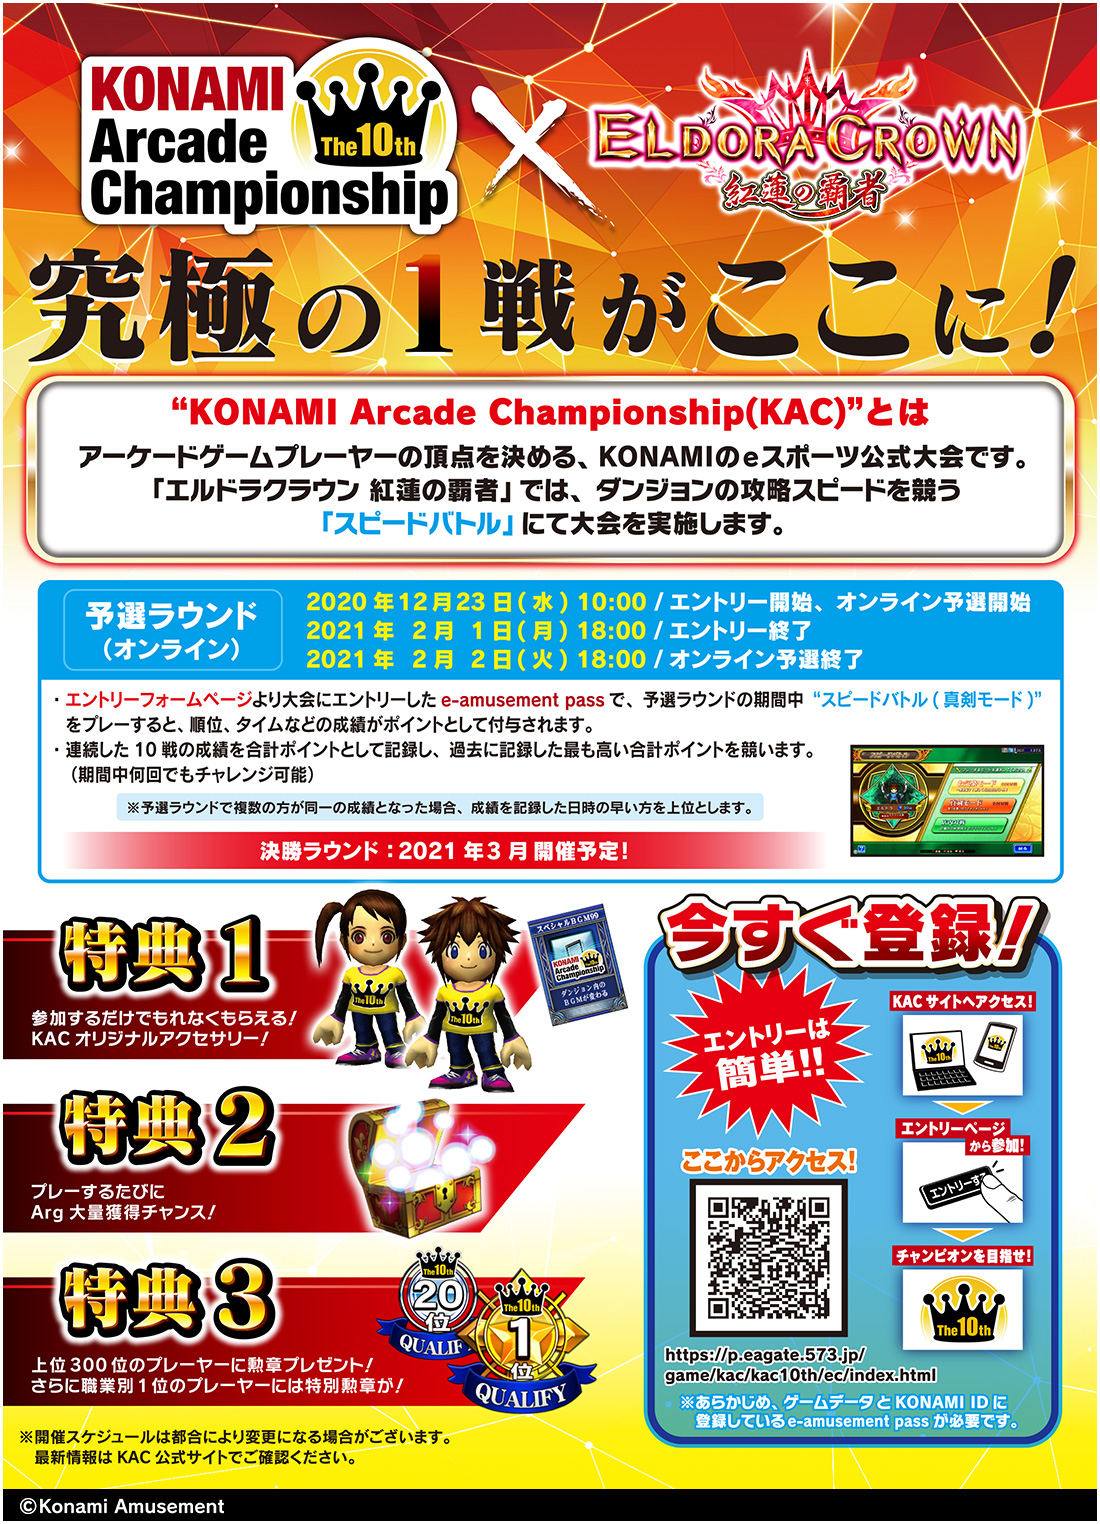 「The 10th KONAMI Arcade Championship」予選ラウンド開始!